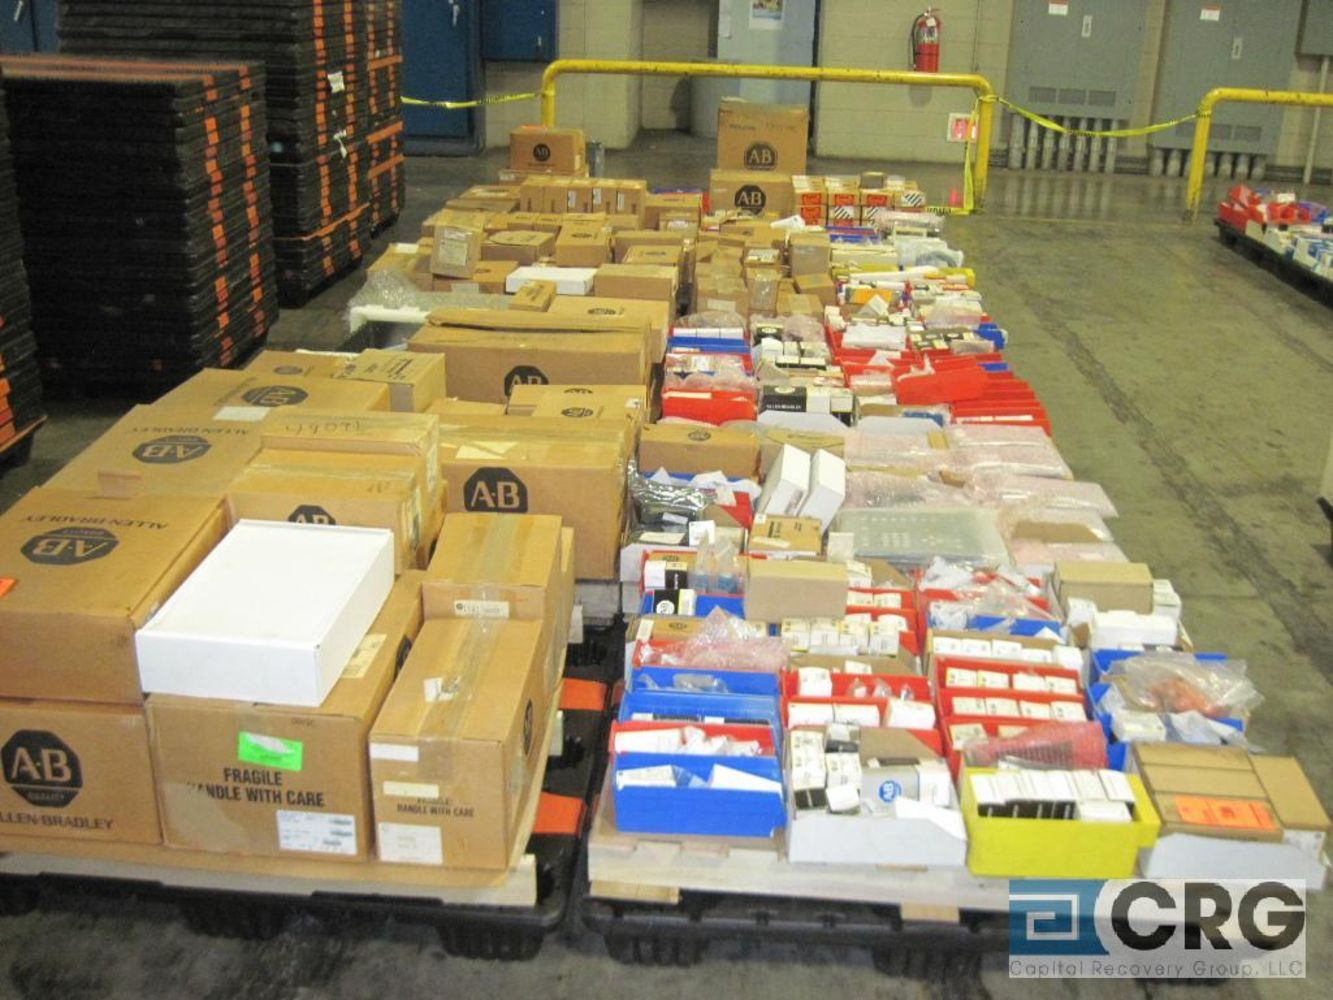 Day 1 - Major Printing Plant Auction - Surplus Assets of The Philadelphia Inquirer